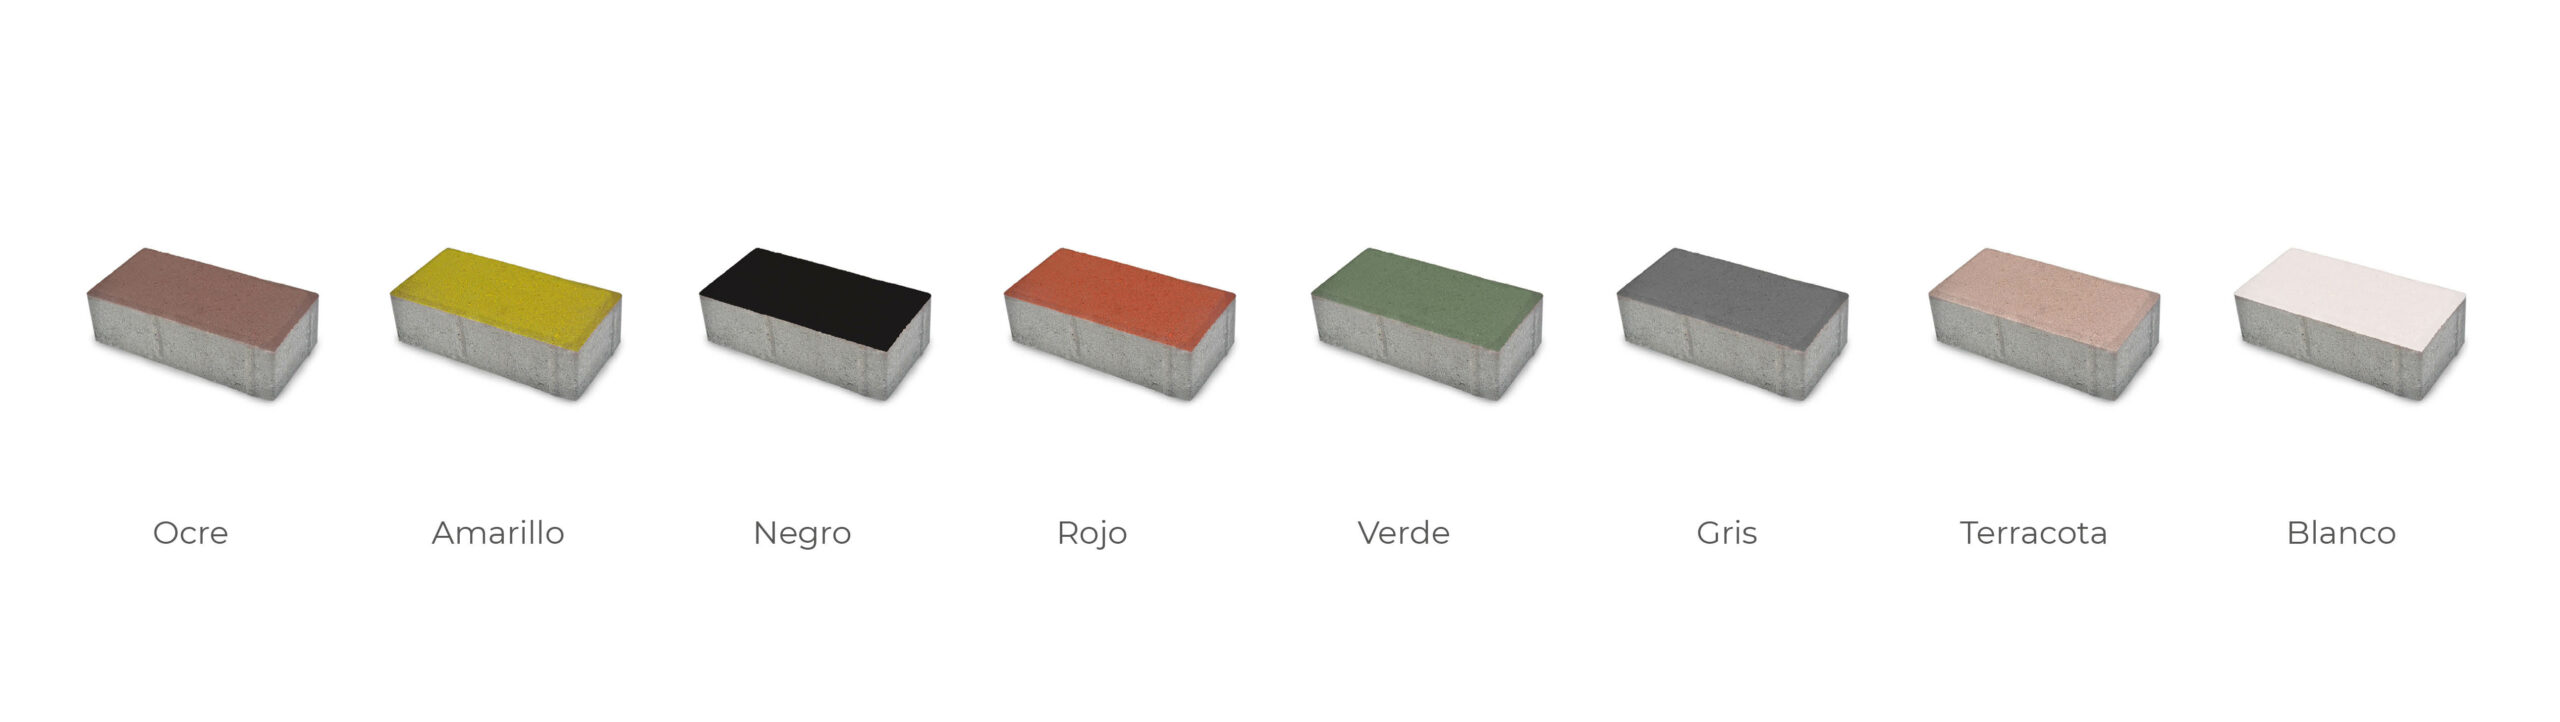 Color_adoquines_real_concreta_home_colombia